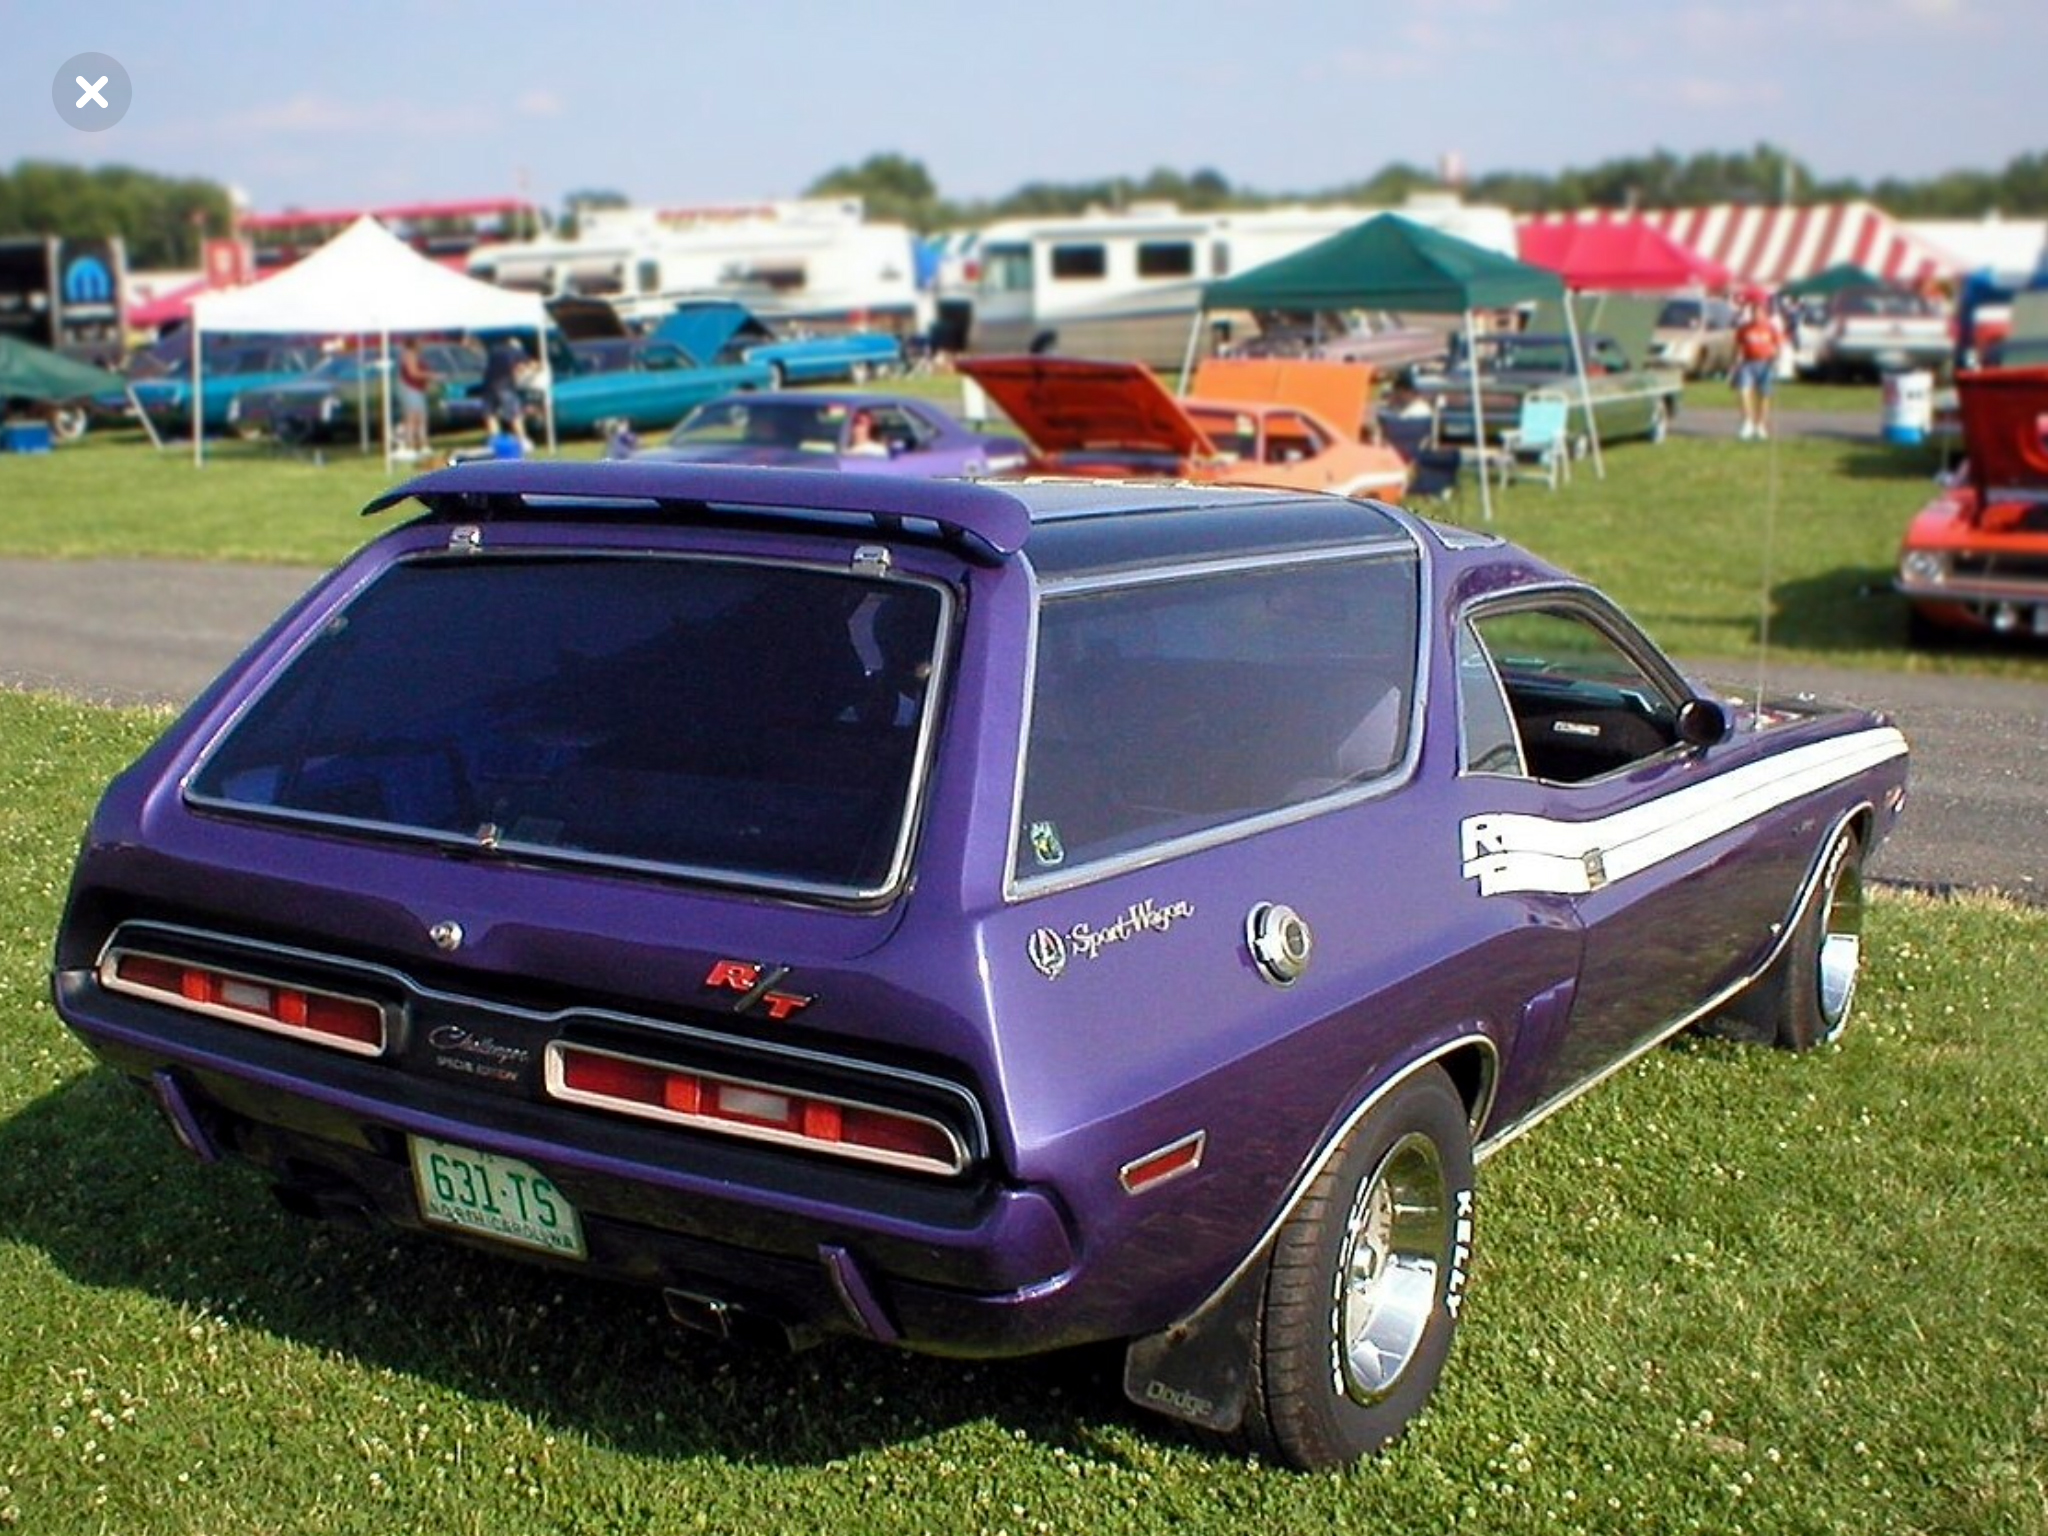 Challenger wagon from the 70's, rear.